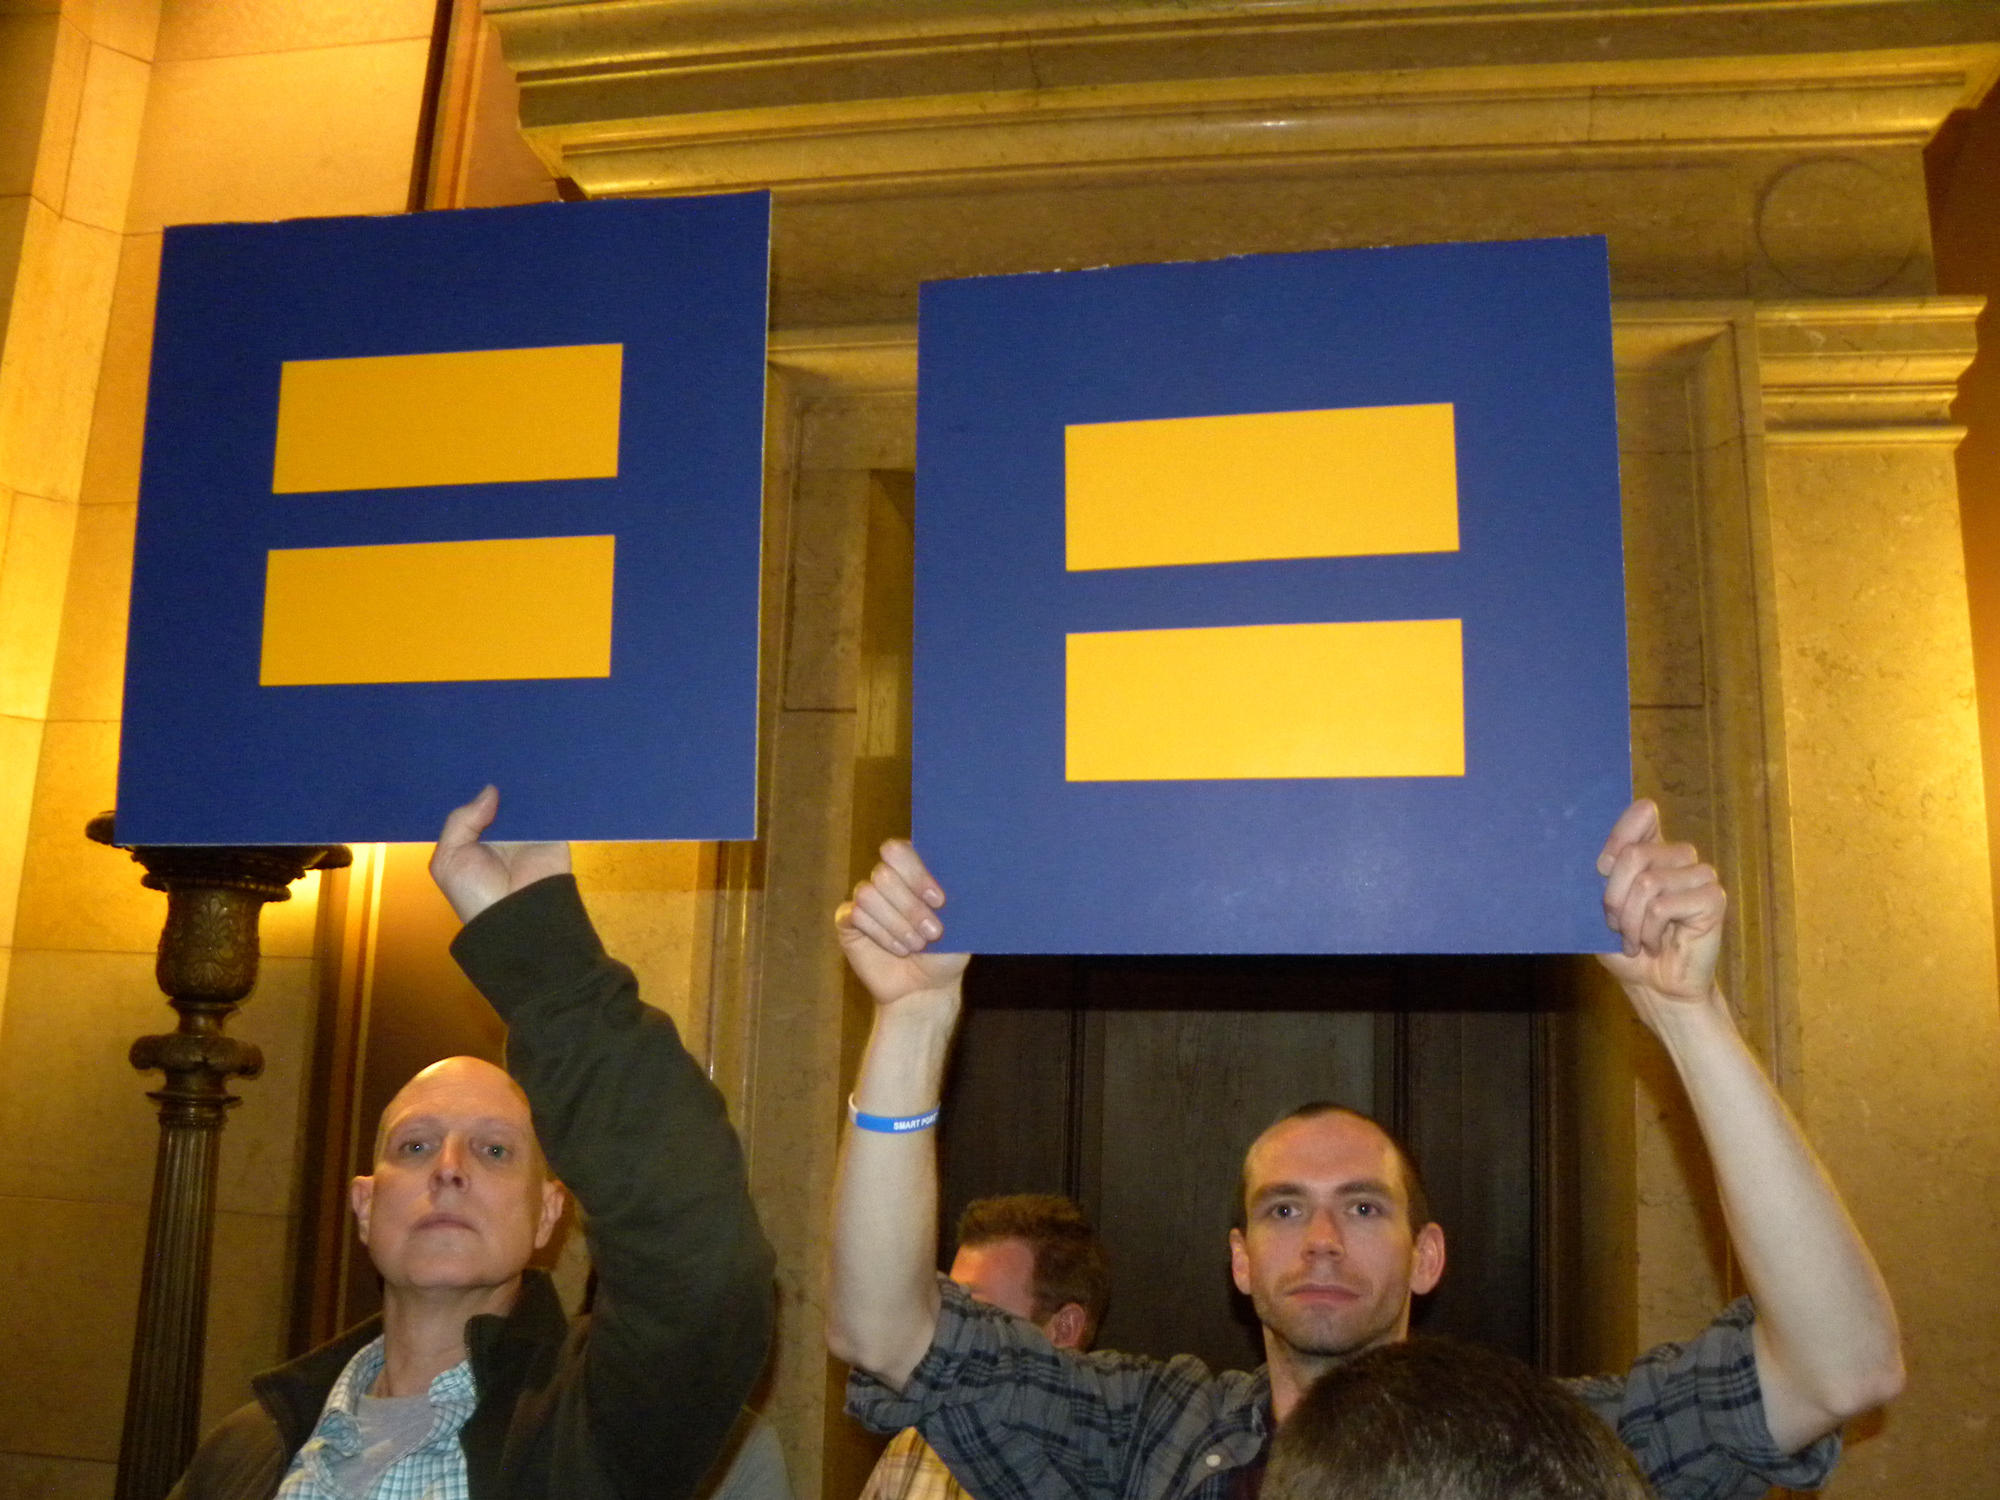 Texas on the hook for $600000 after conceding same-sex marriage case